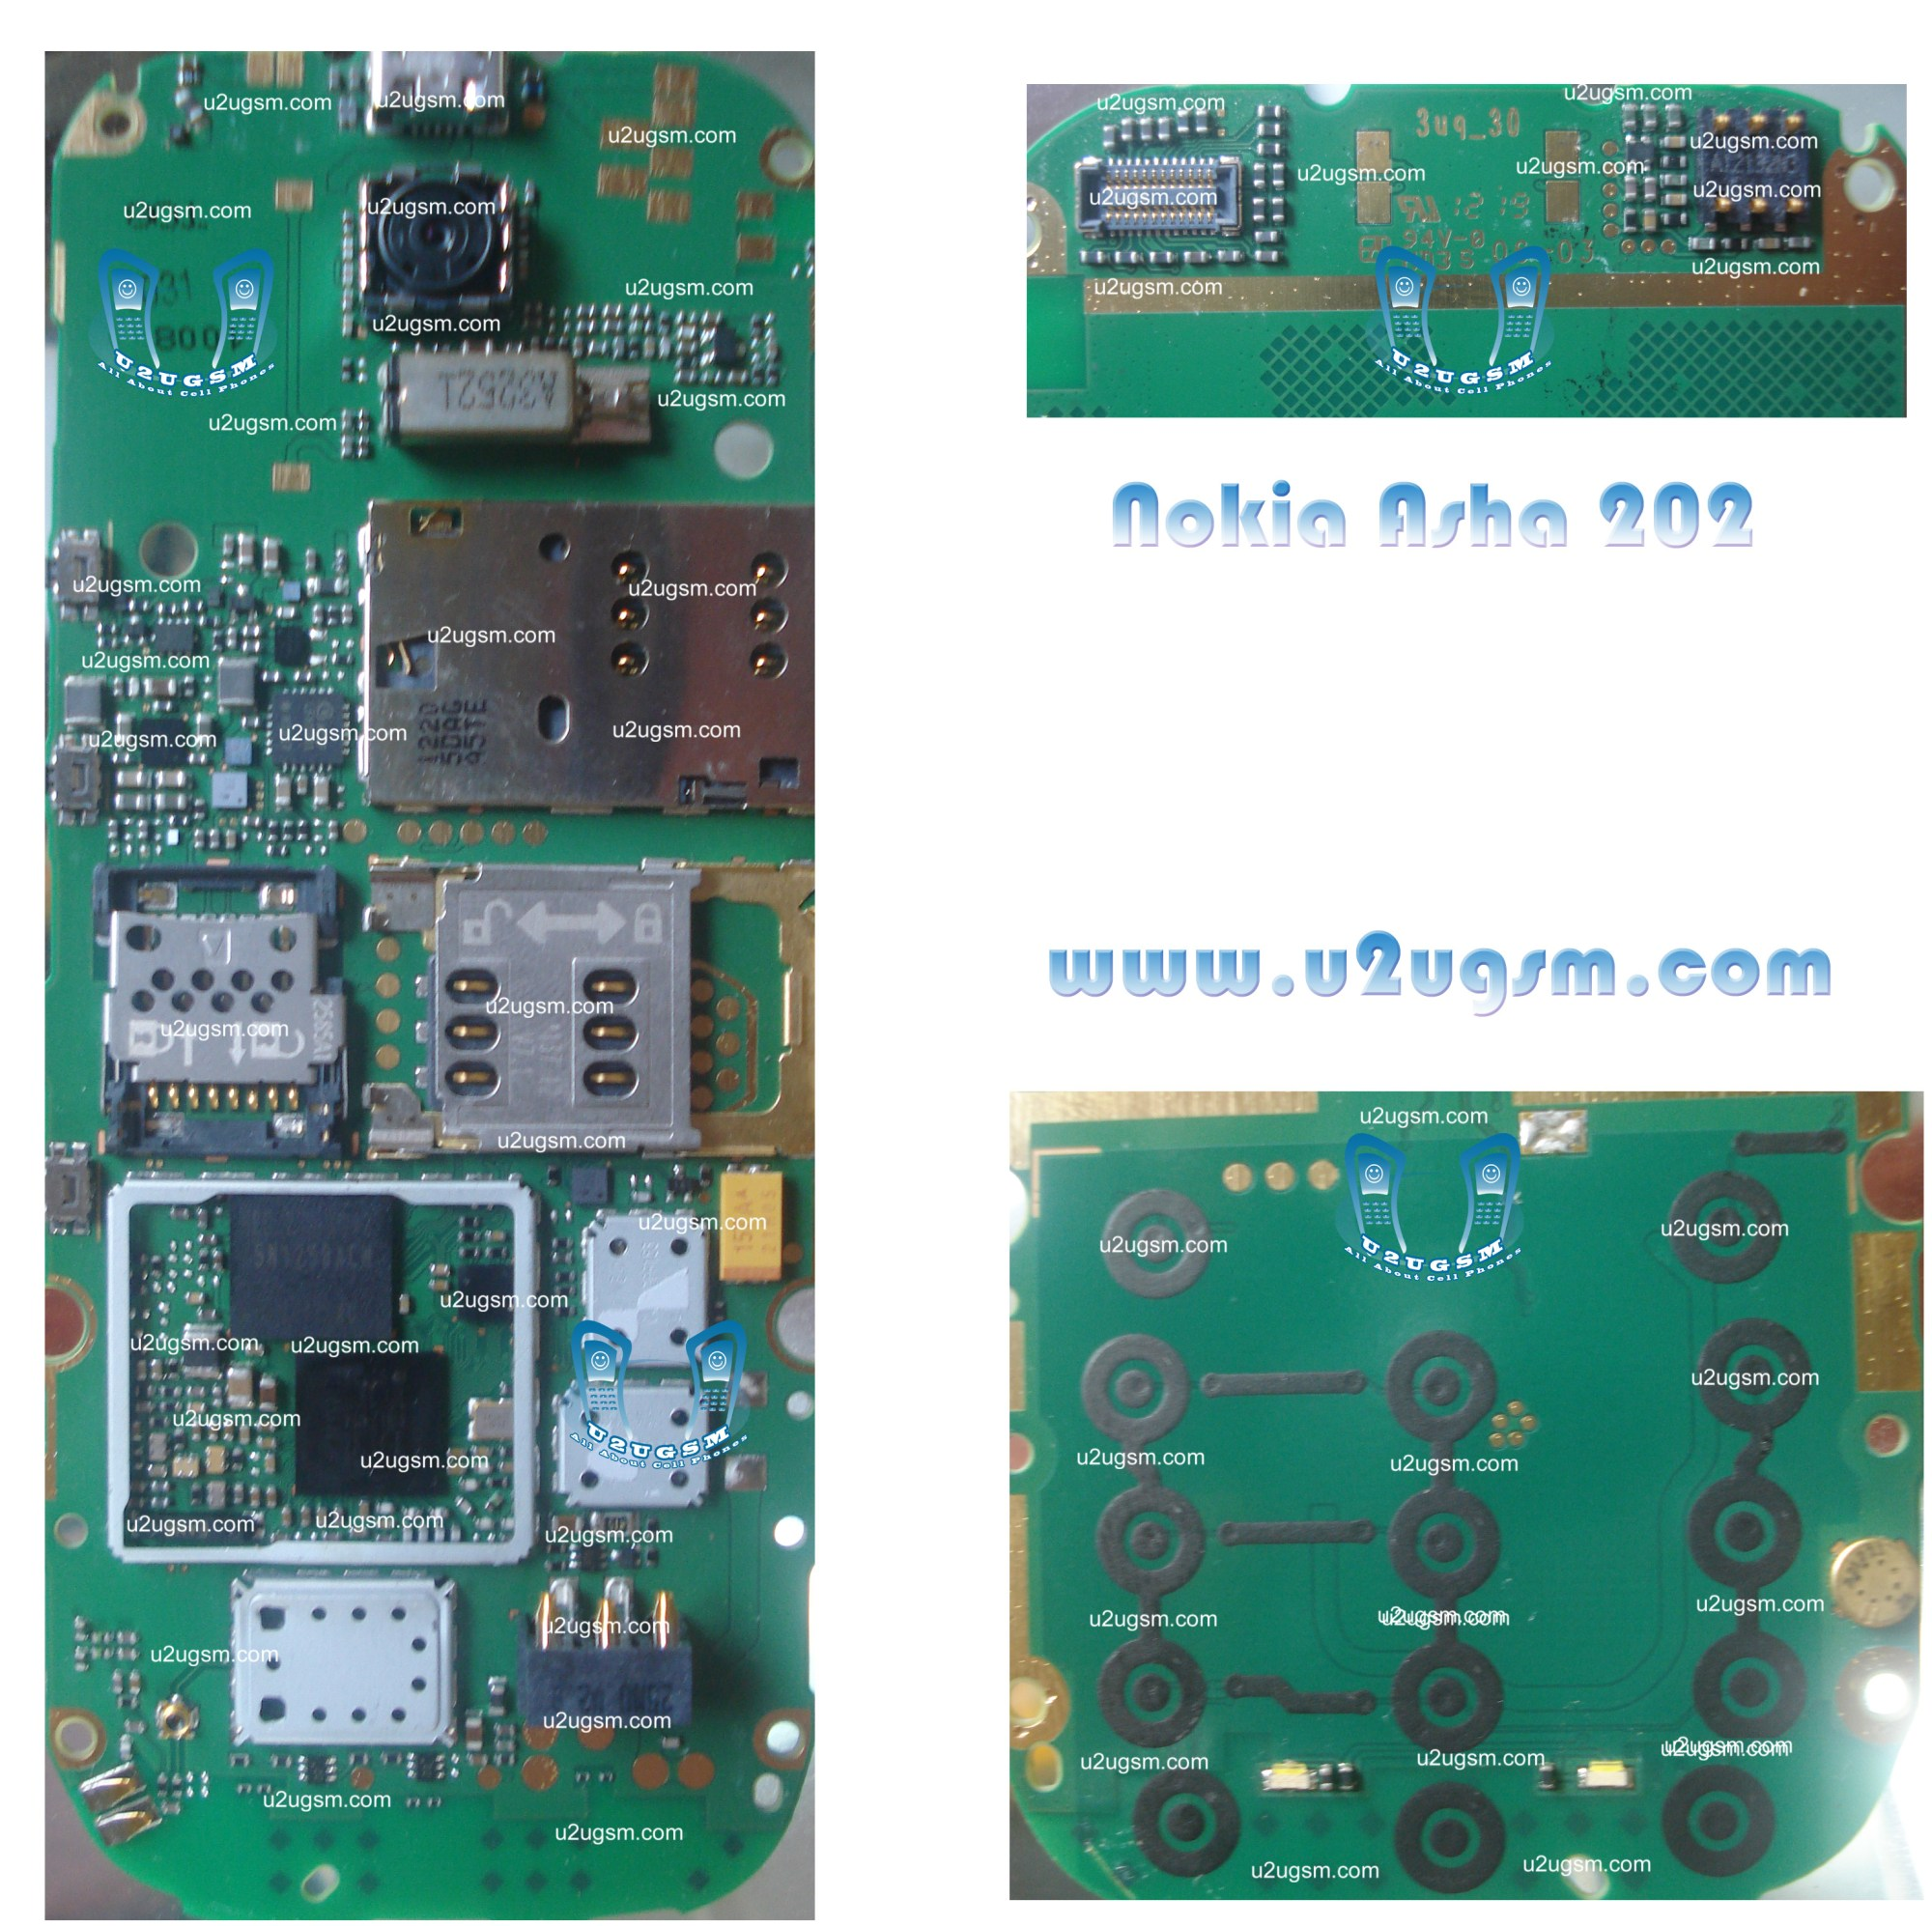 hight resolution of nokia 114 pcb circuit diagram wiring diagram weeknokia asha 202 full pcb diagram mother board layout